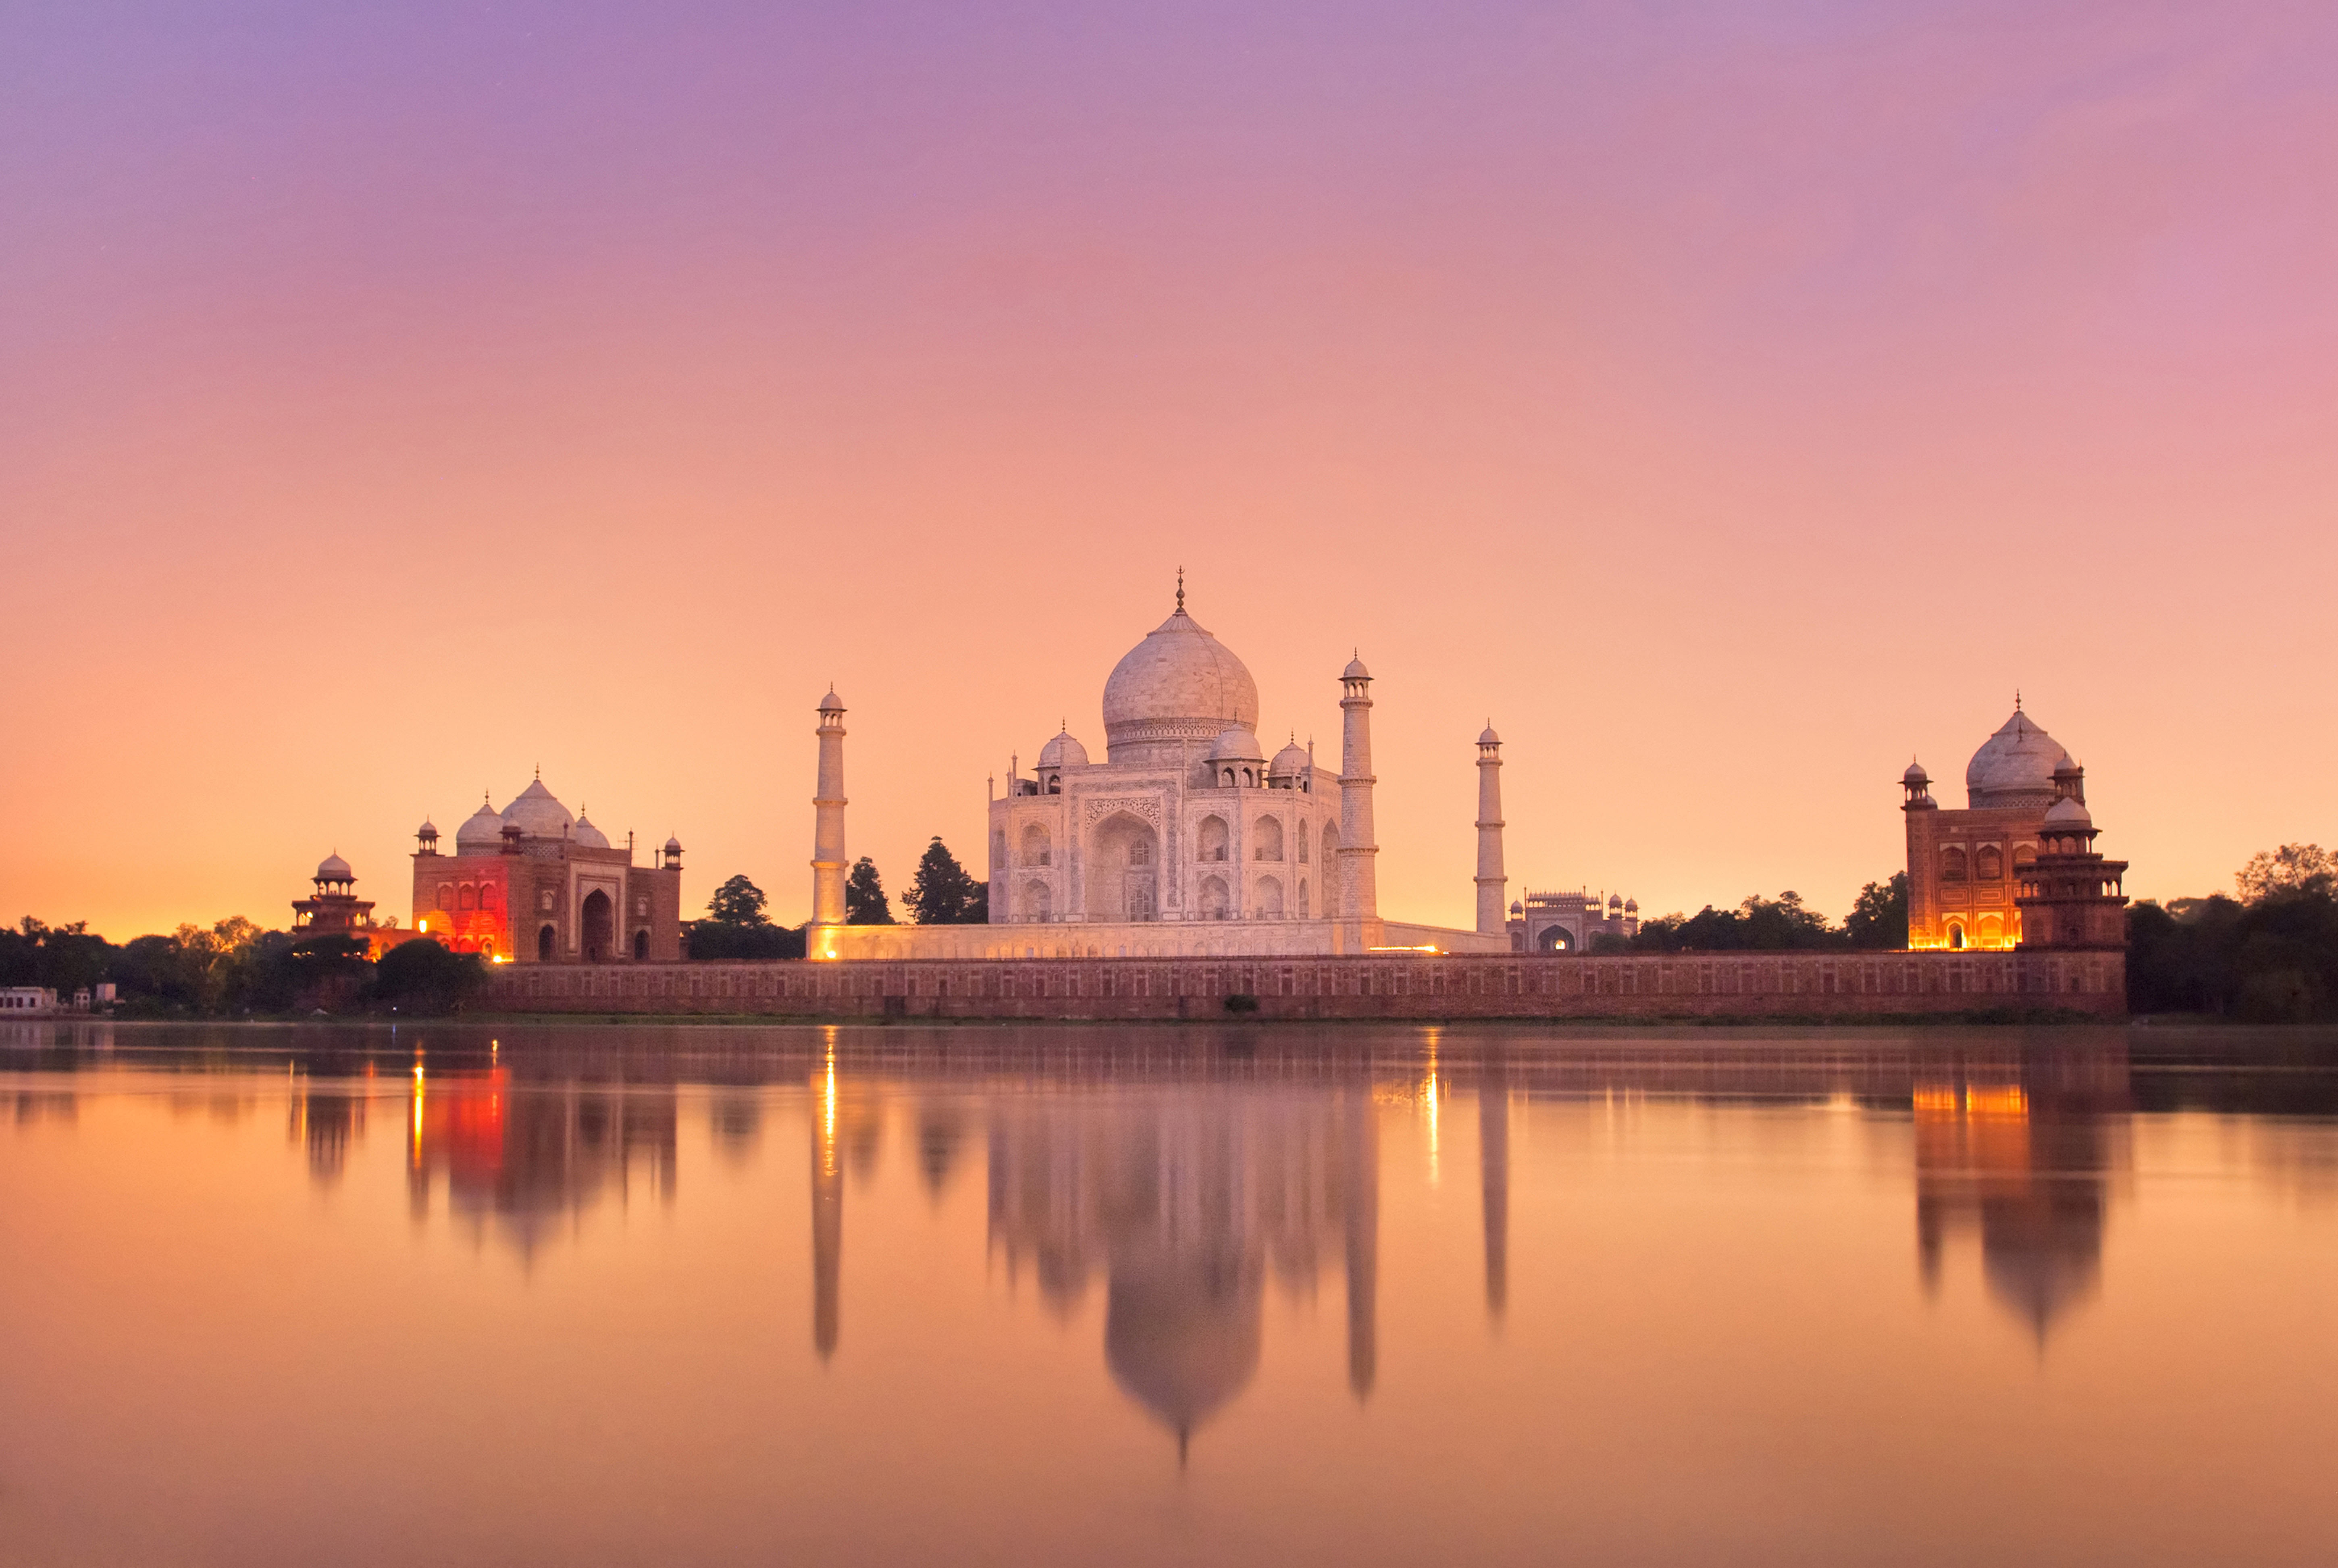 Taj Mahal at sunset, Agra, Valentine's Day